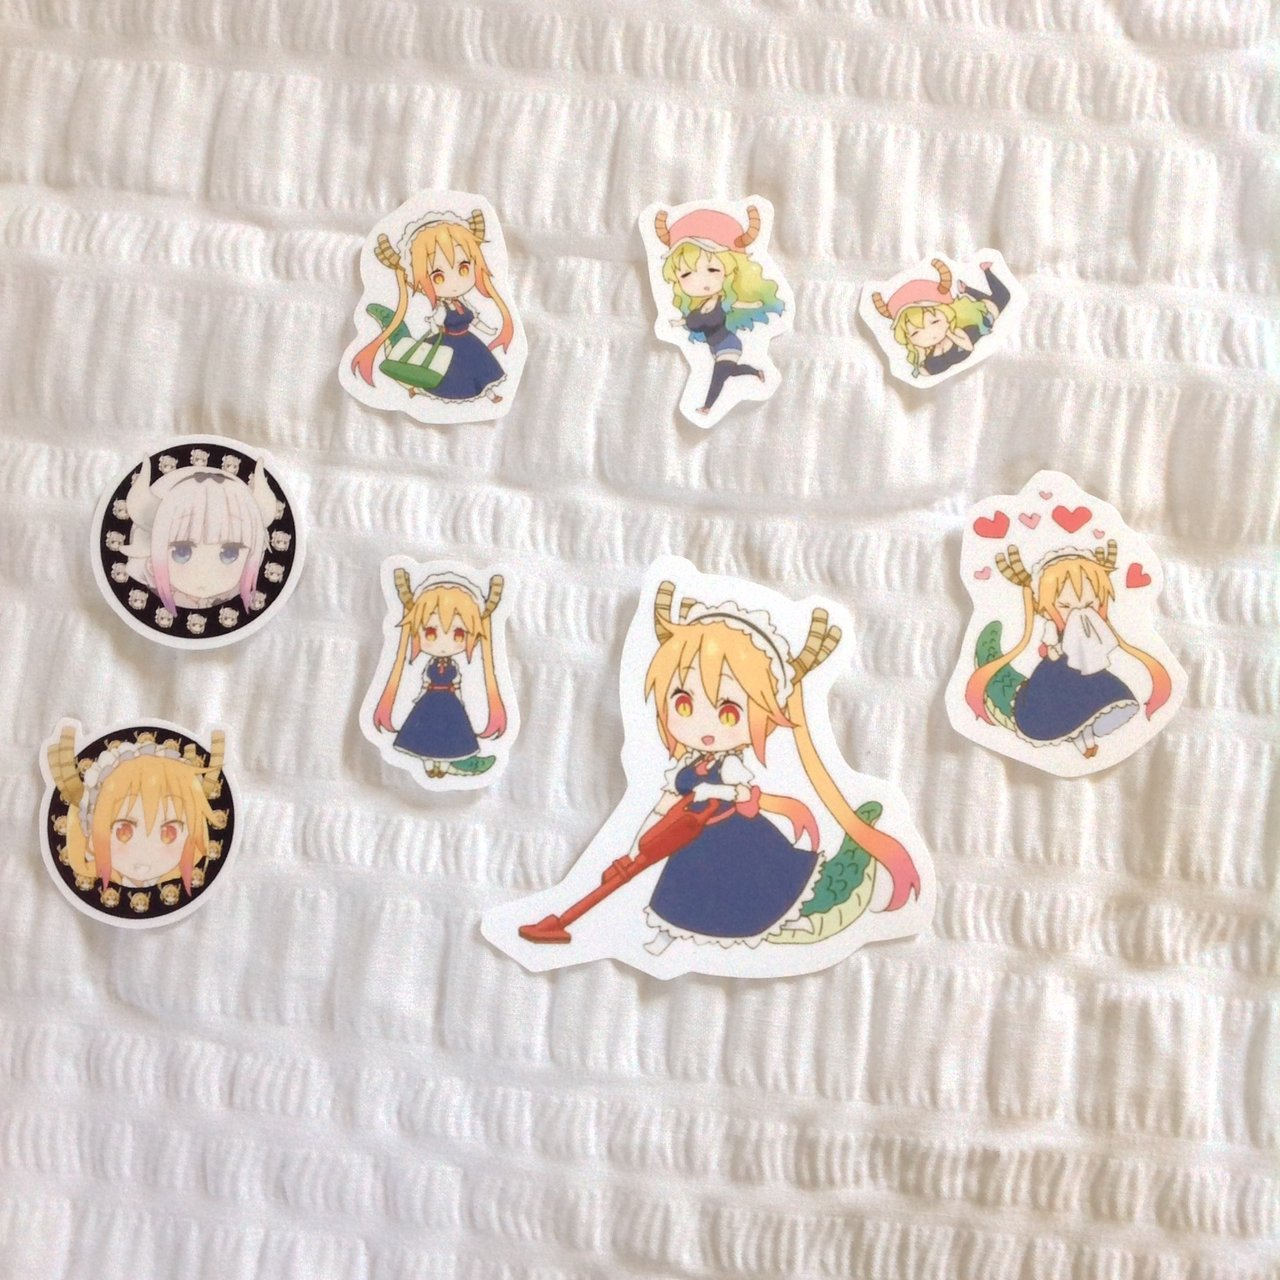 4 Cute Tumblr Stickers The Supreme One Is Fake In An For 4 Depop